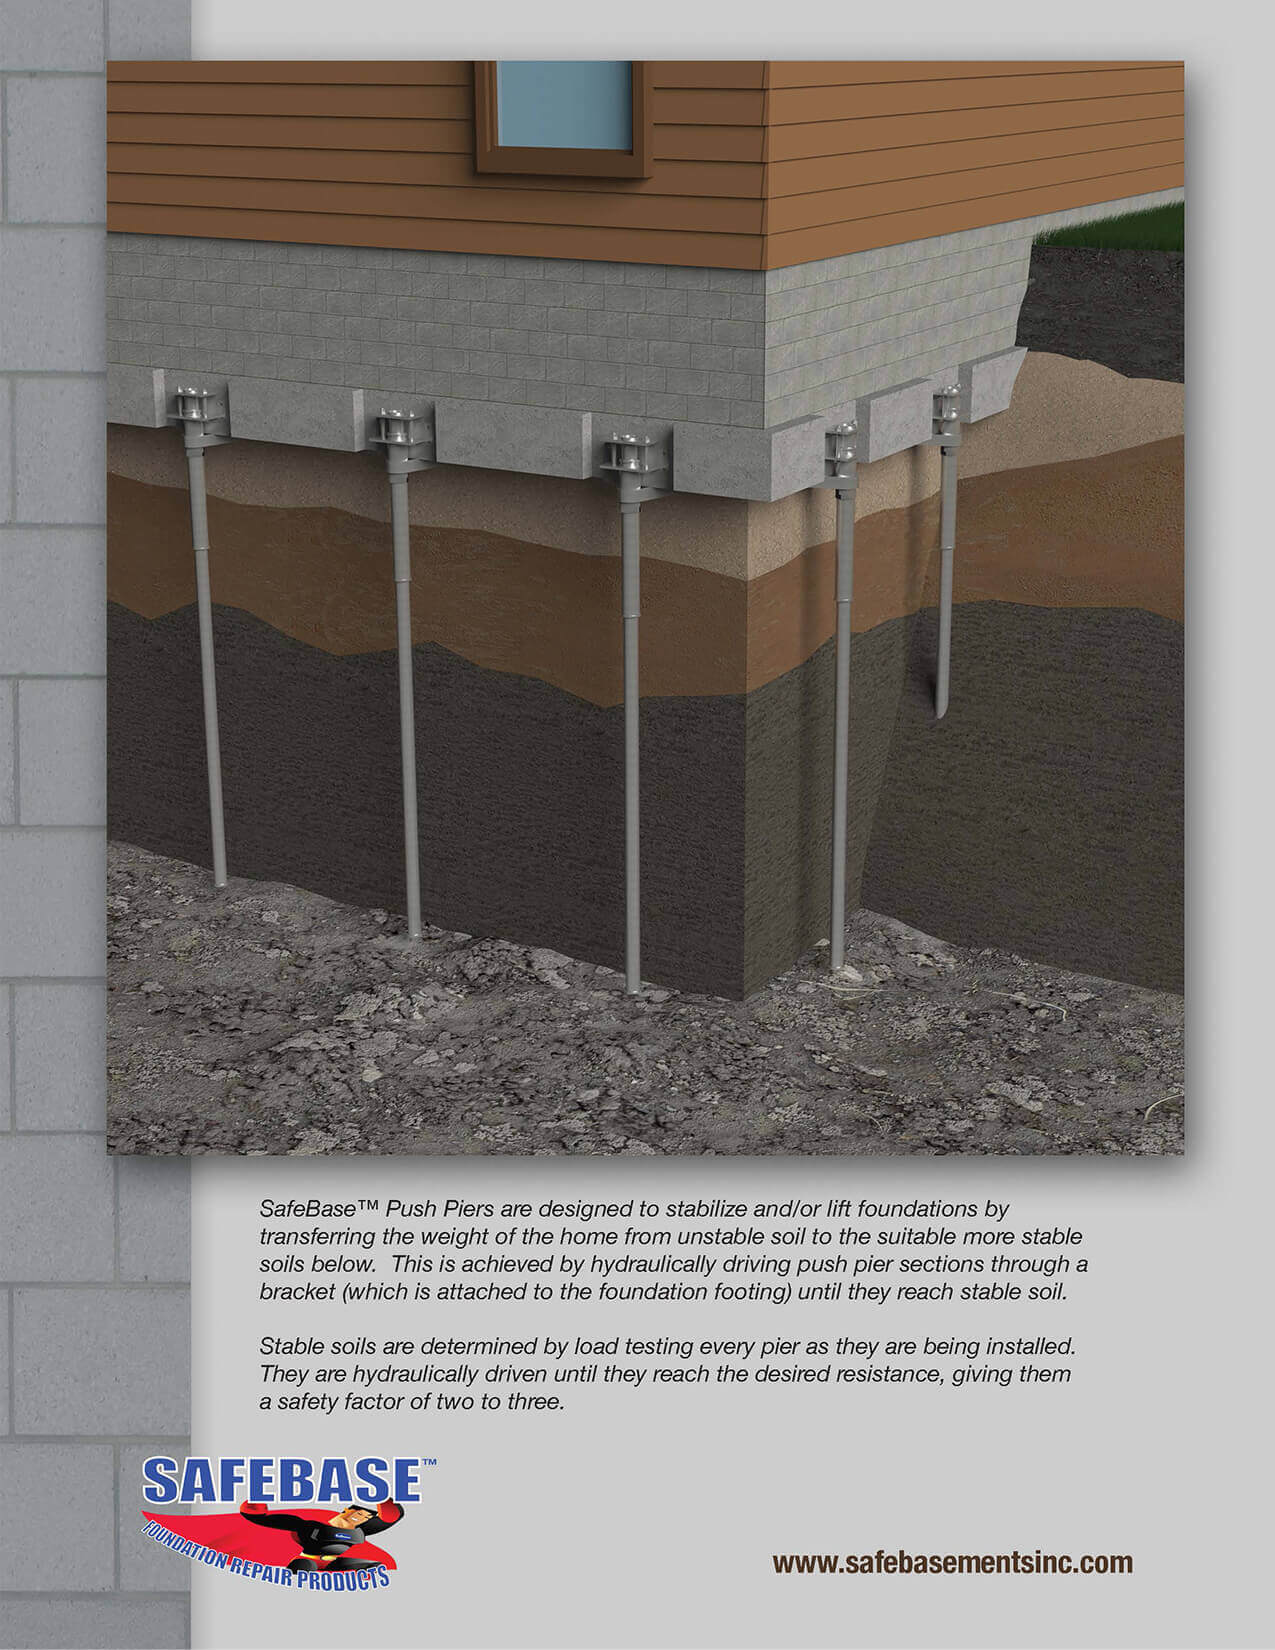 Safebase Push Piers Fixing Foundation Settlement